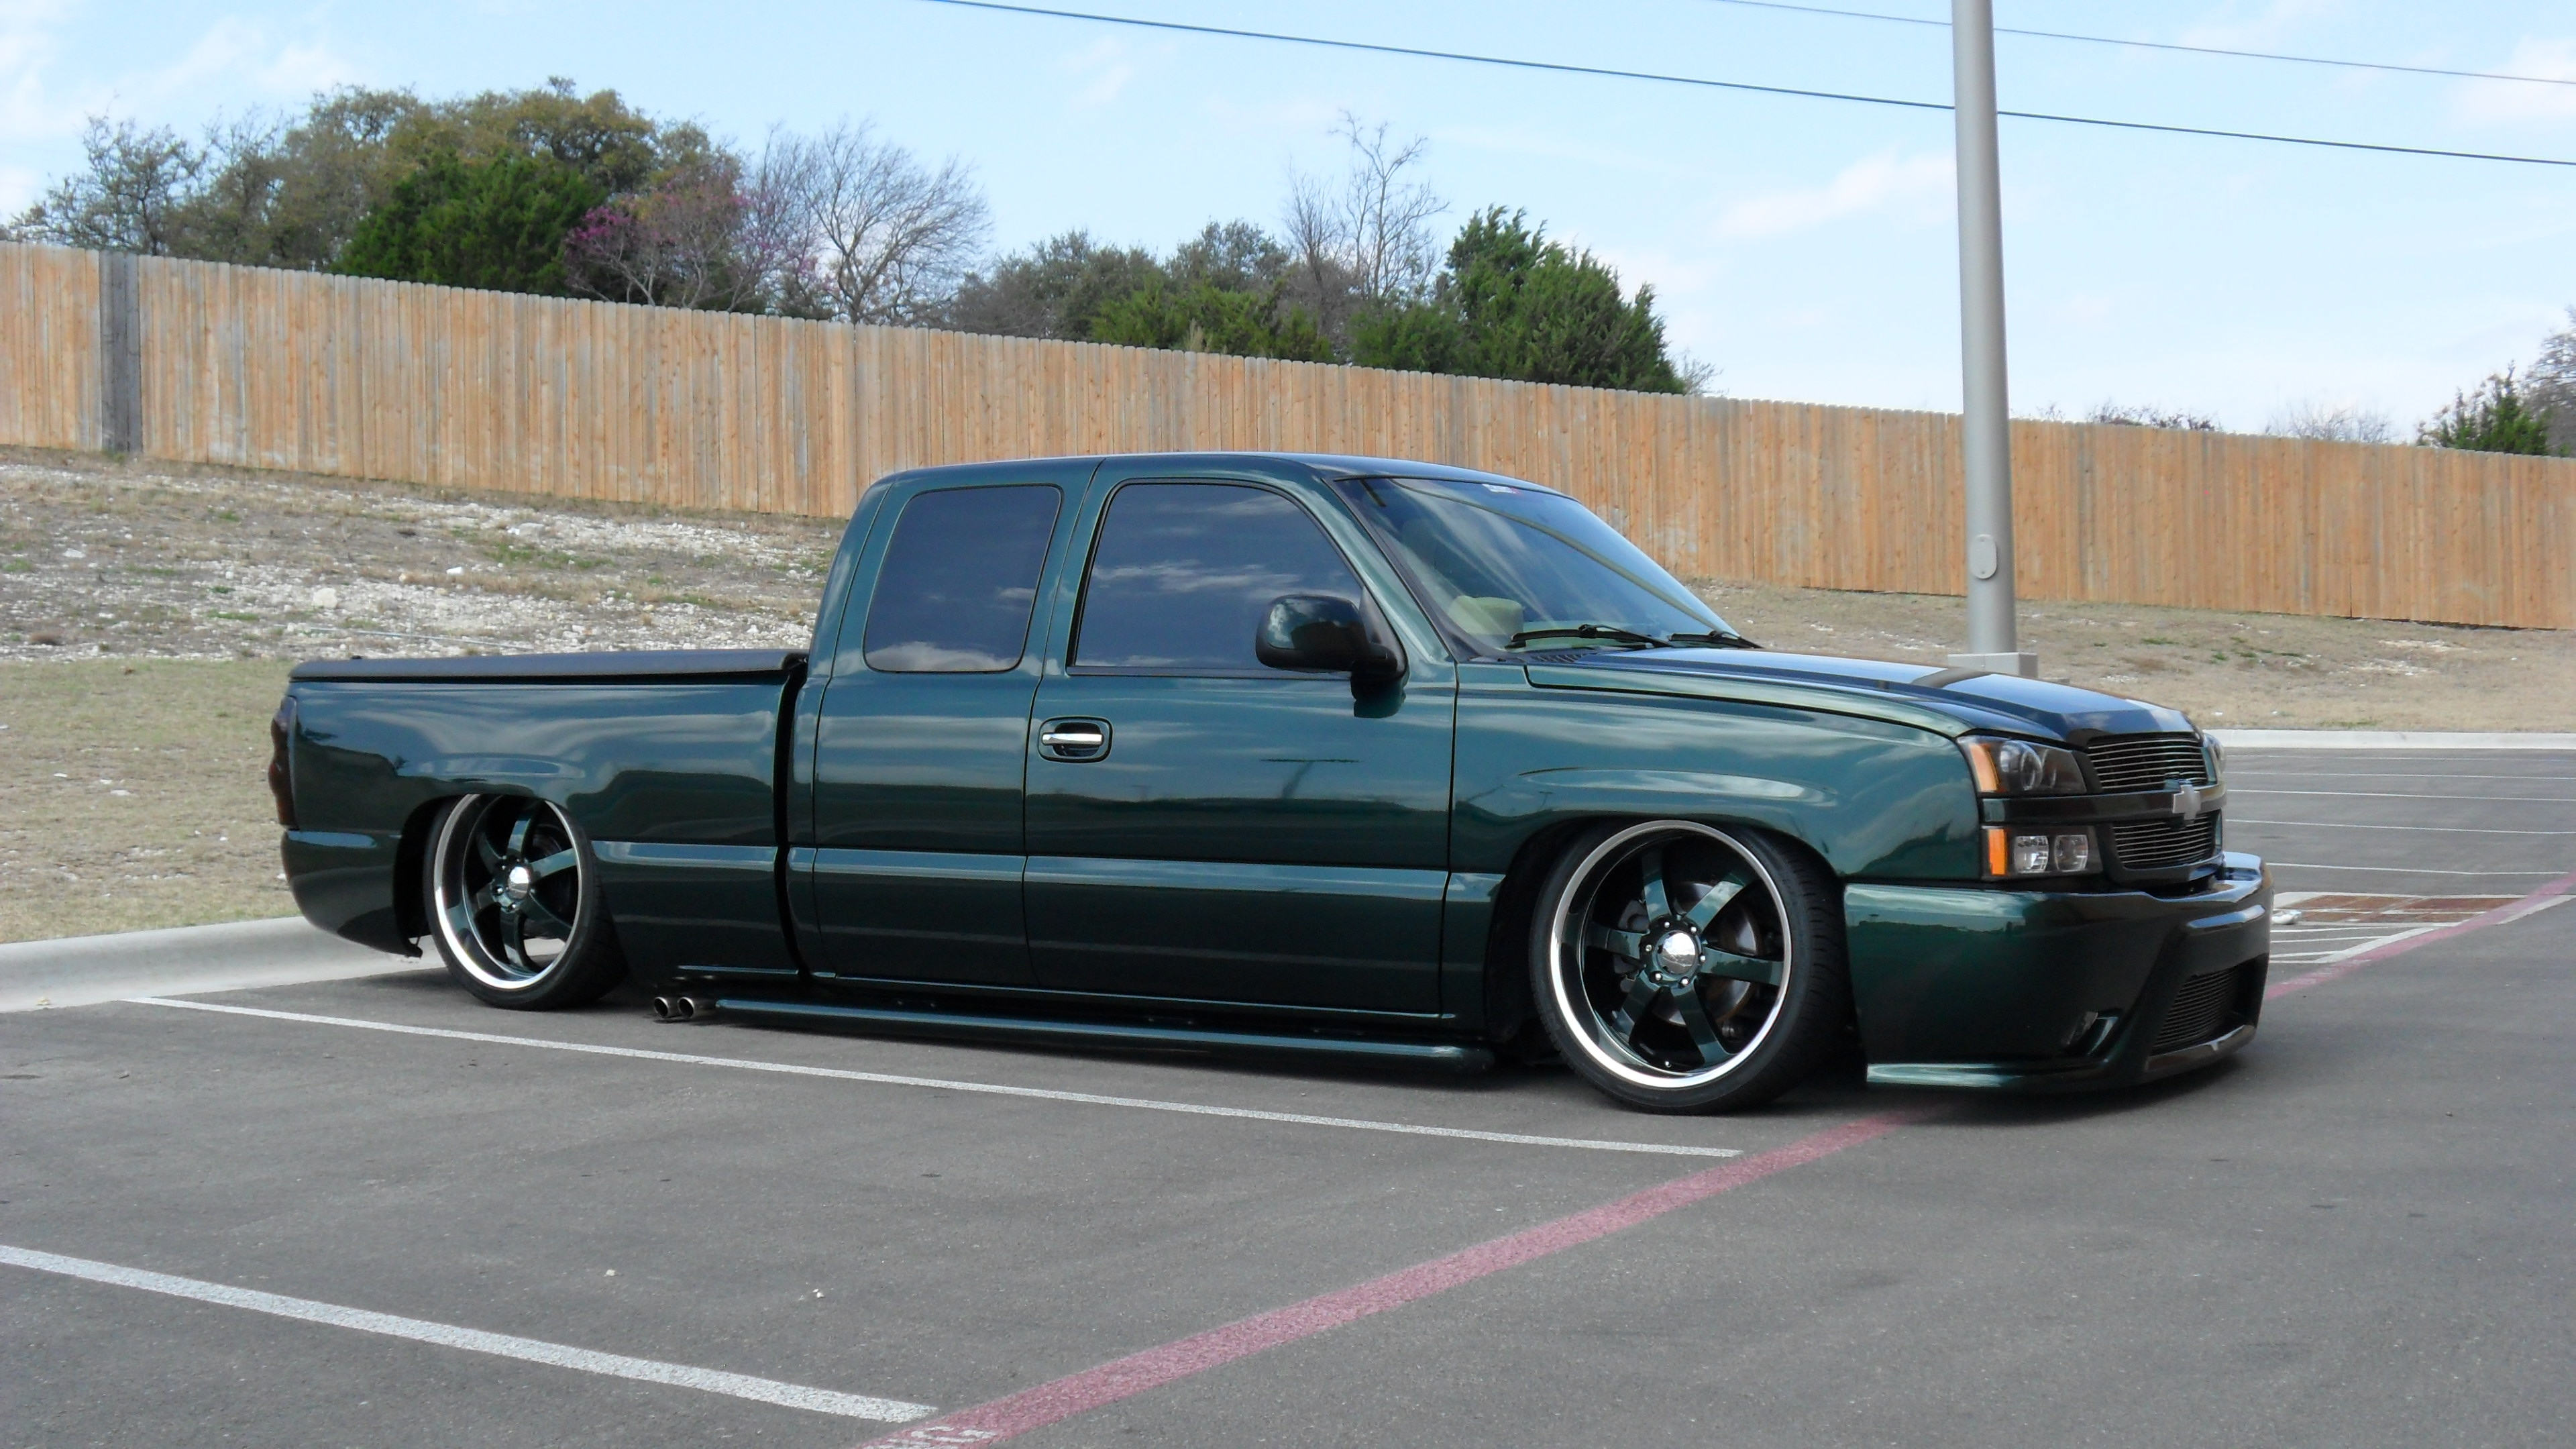 Ram 1500 Slammed Groundforce Quadcab Dodge Horsepower Exhaust